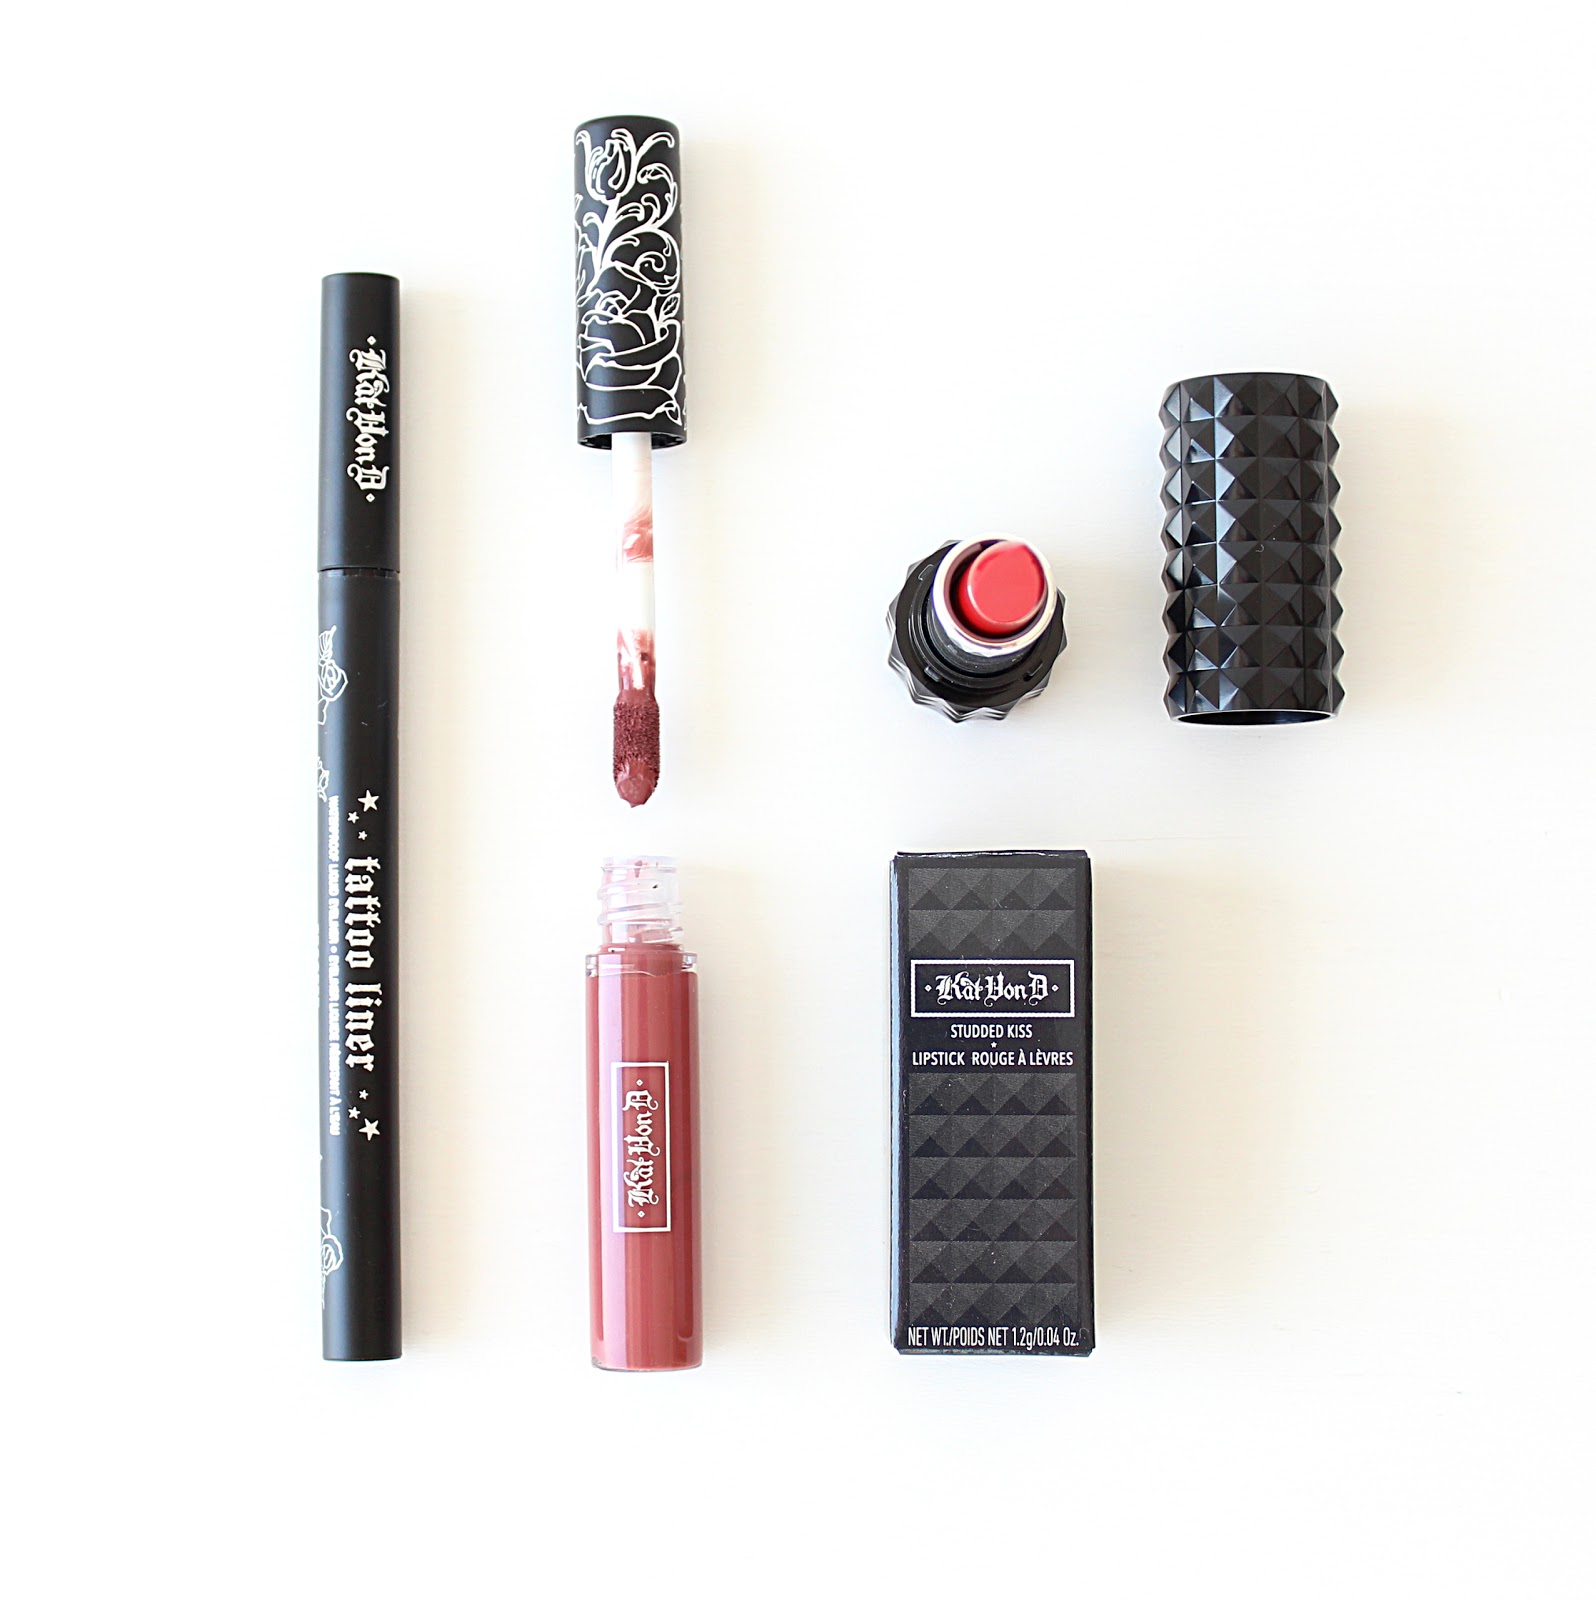 Kat Von D Beauty Review, Everlasting Liquid Lipstick in Lolita, Studded Kiss Lipstick in Underage Red, Tattoo Liner